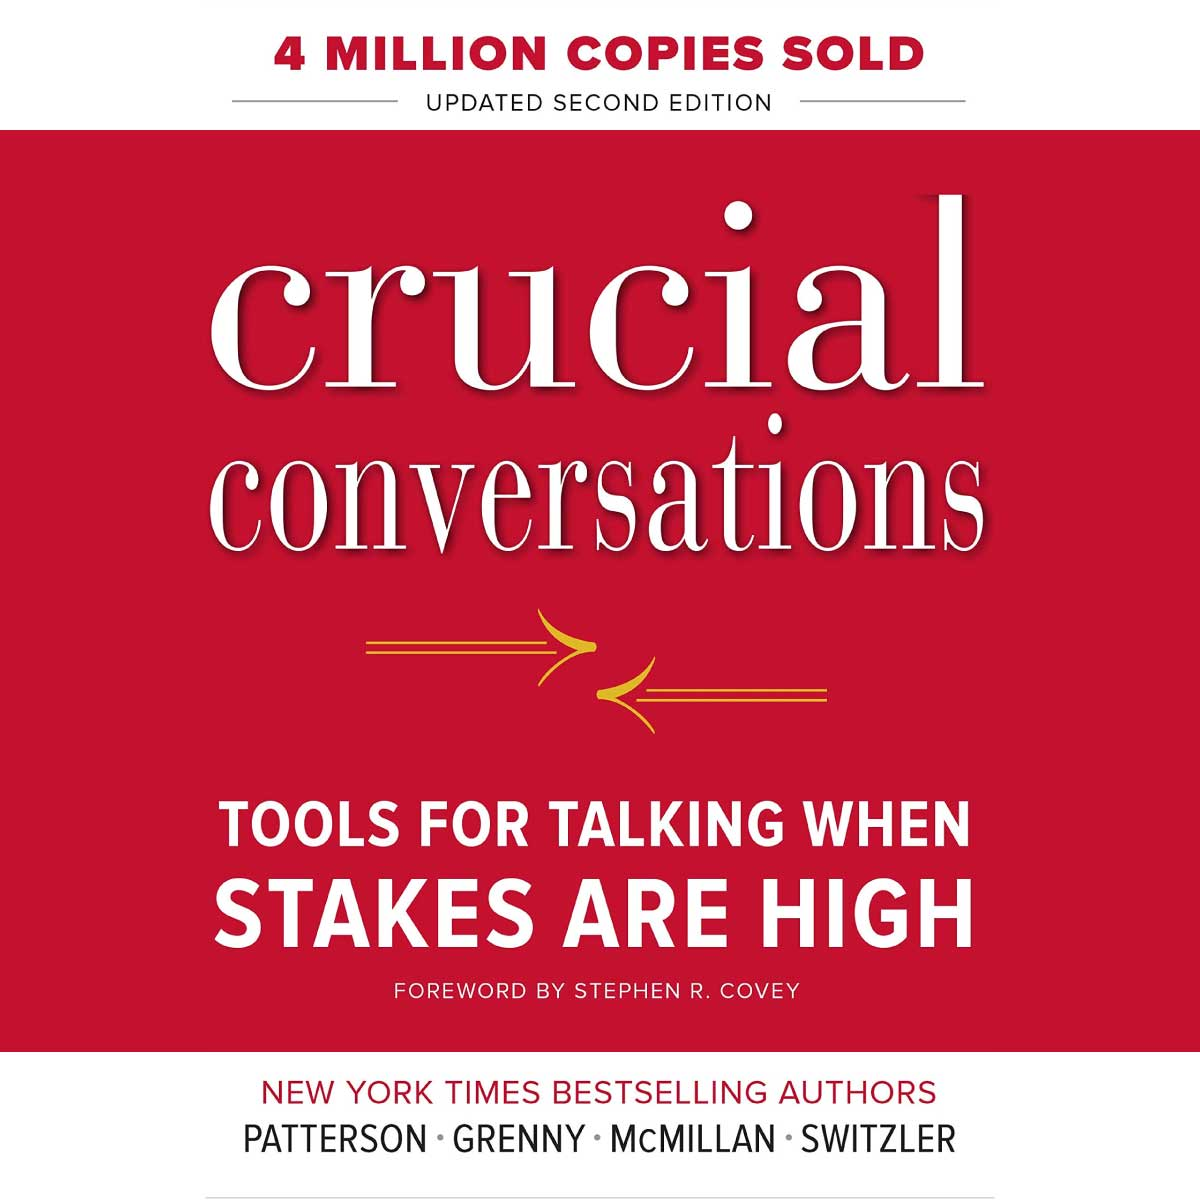 book,-crucial-conversations,-Patterson-Grenny-McMillan-Switzler,-actionstep,-actionstep-consultant,-legal-software,-workflow,-timematters,-clio,-smokeball,-john-rehbein,-beth-ettinger